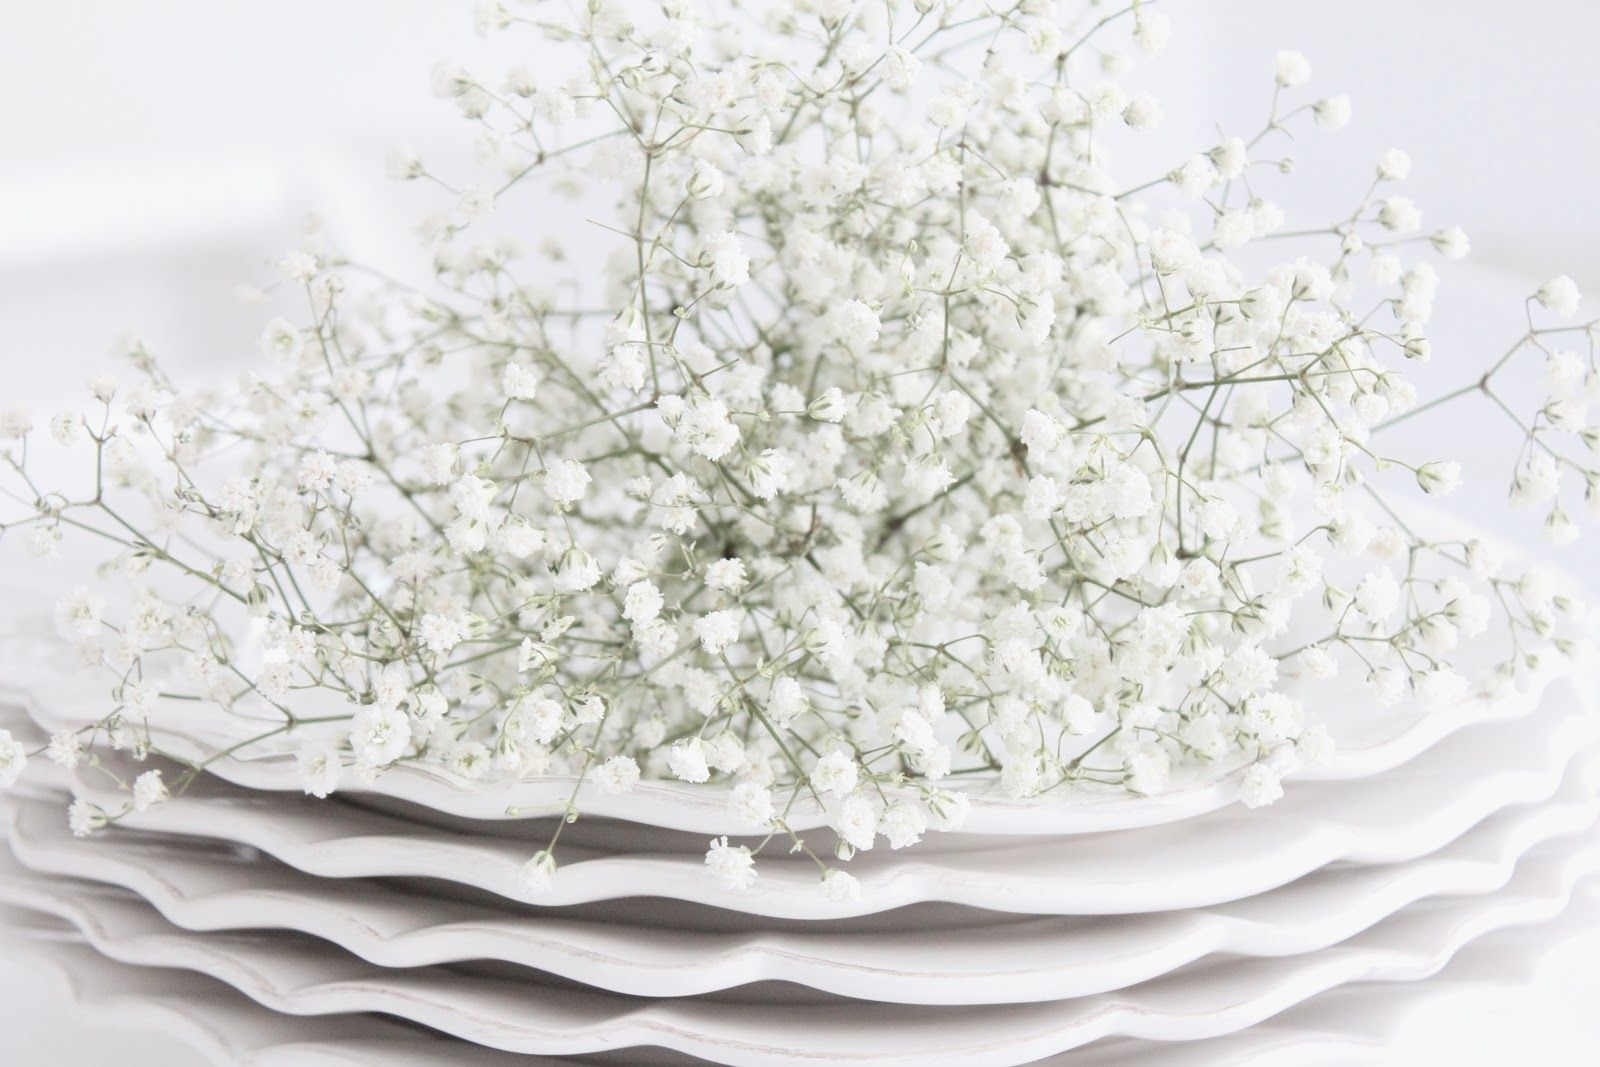 White and Shabby: WHITE BLOSSOMS FOR A BRIGHT WEEKEND